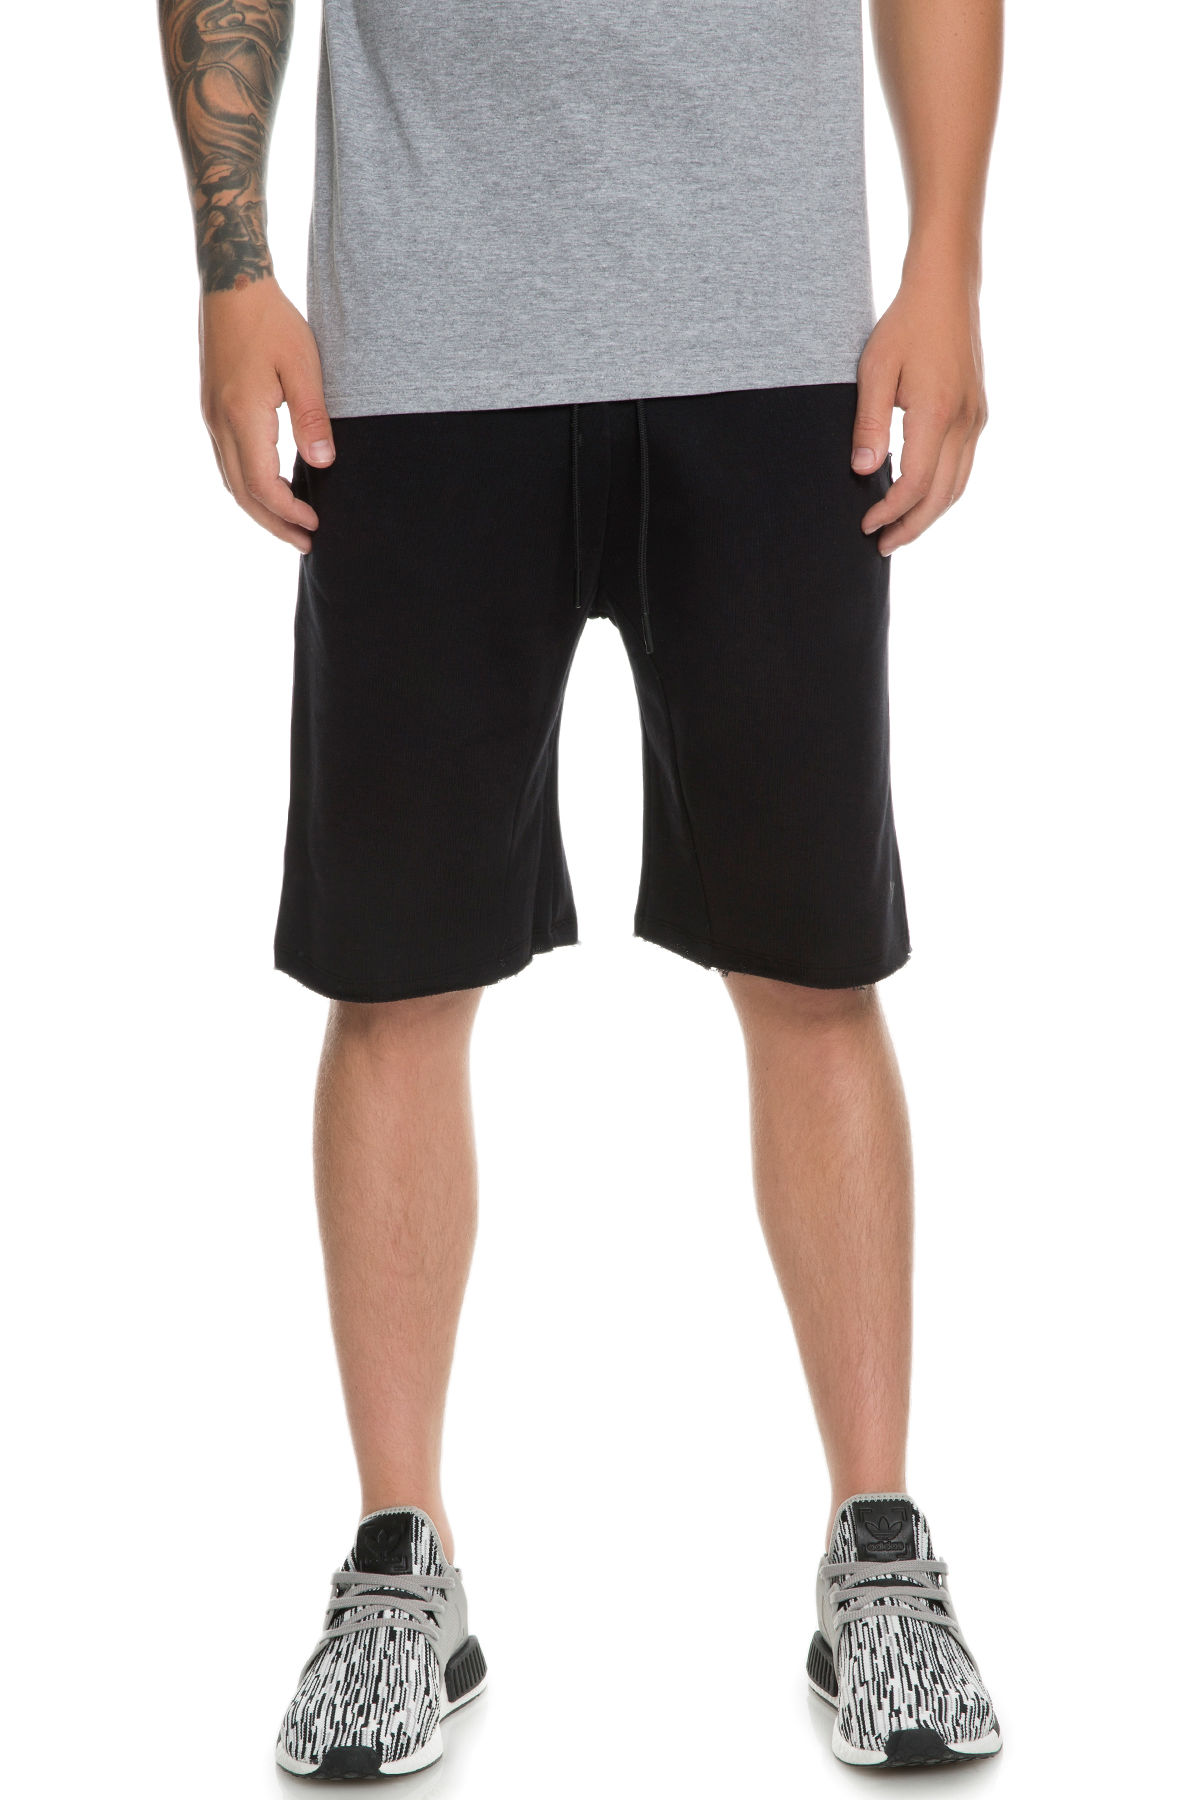 Image of The Jet Set Shorts in Black